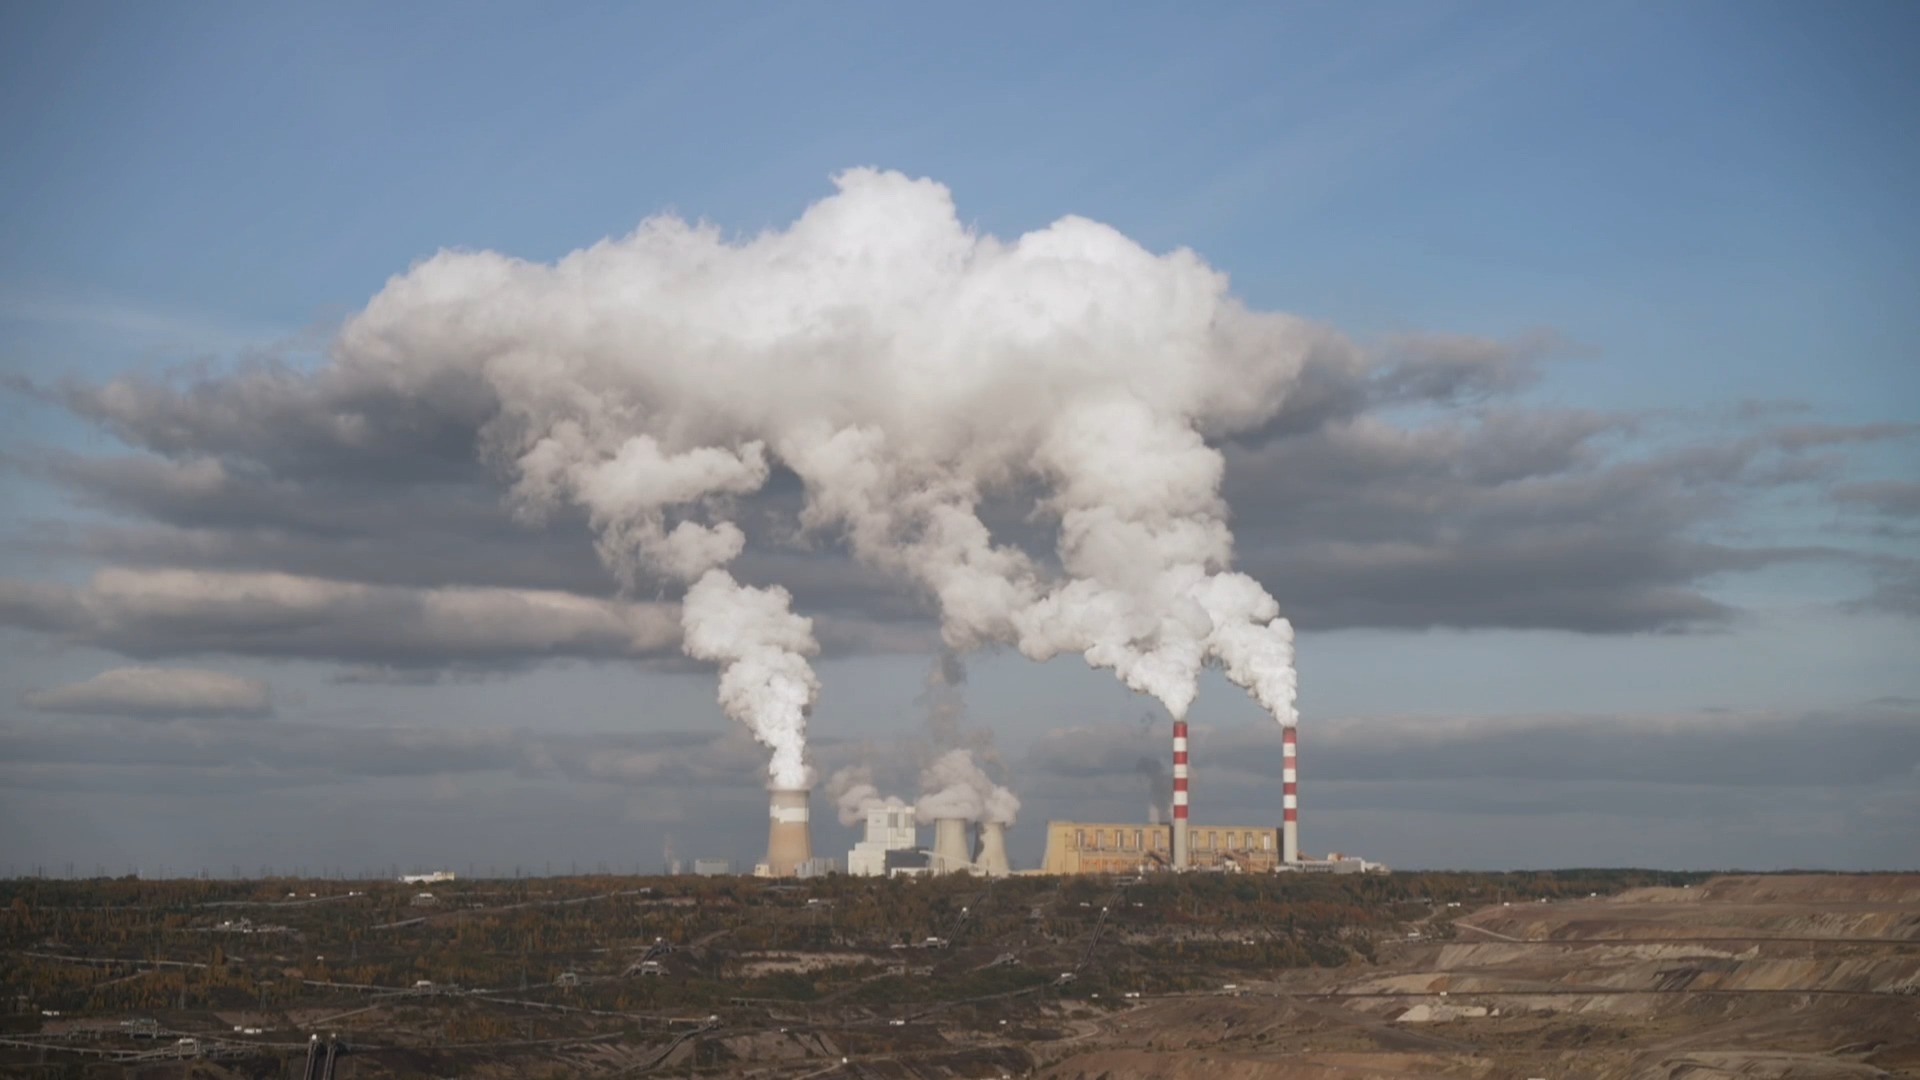 The race to phase out Europe's biggest coal-fired power plant - channel 4